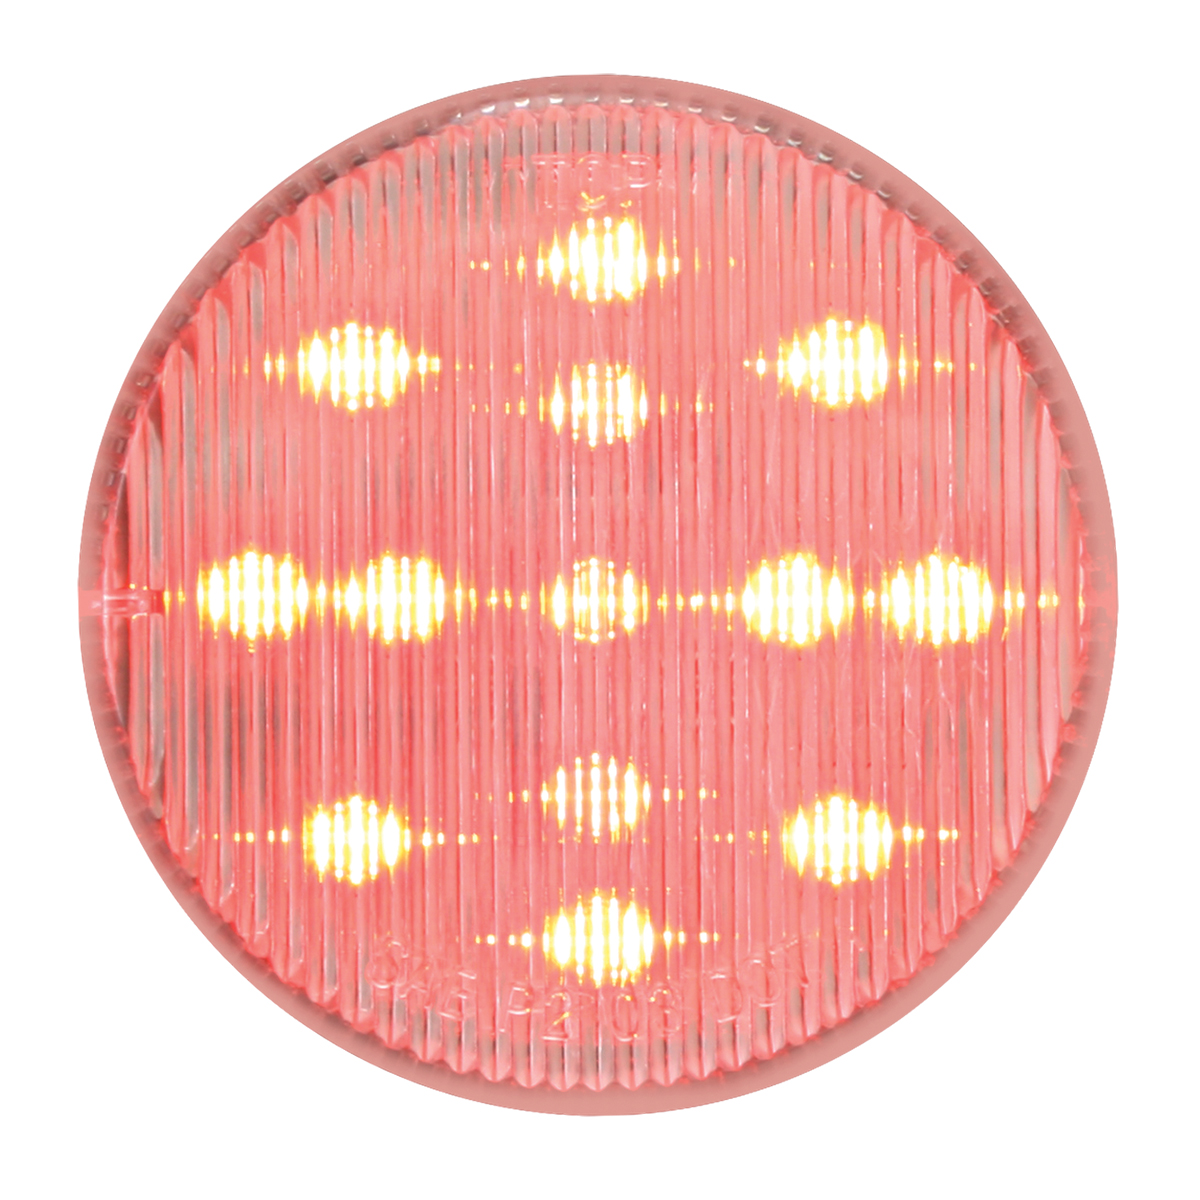 "79318 2-1/2"" Round Fleet Marker Light"